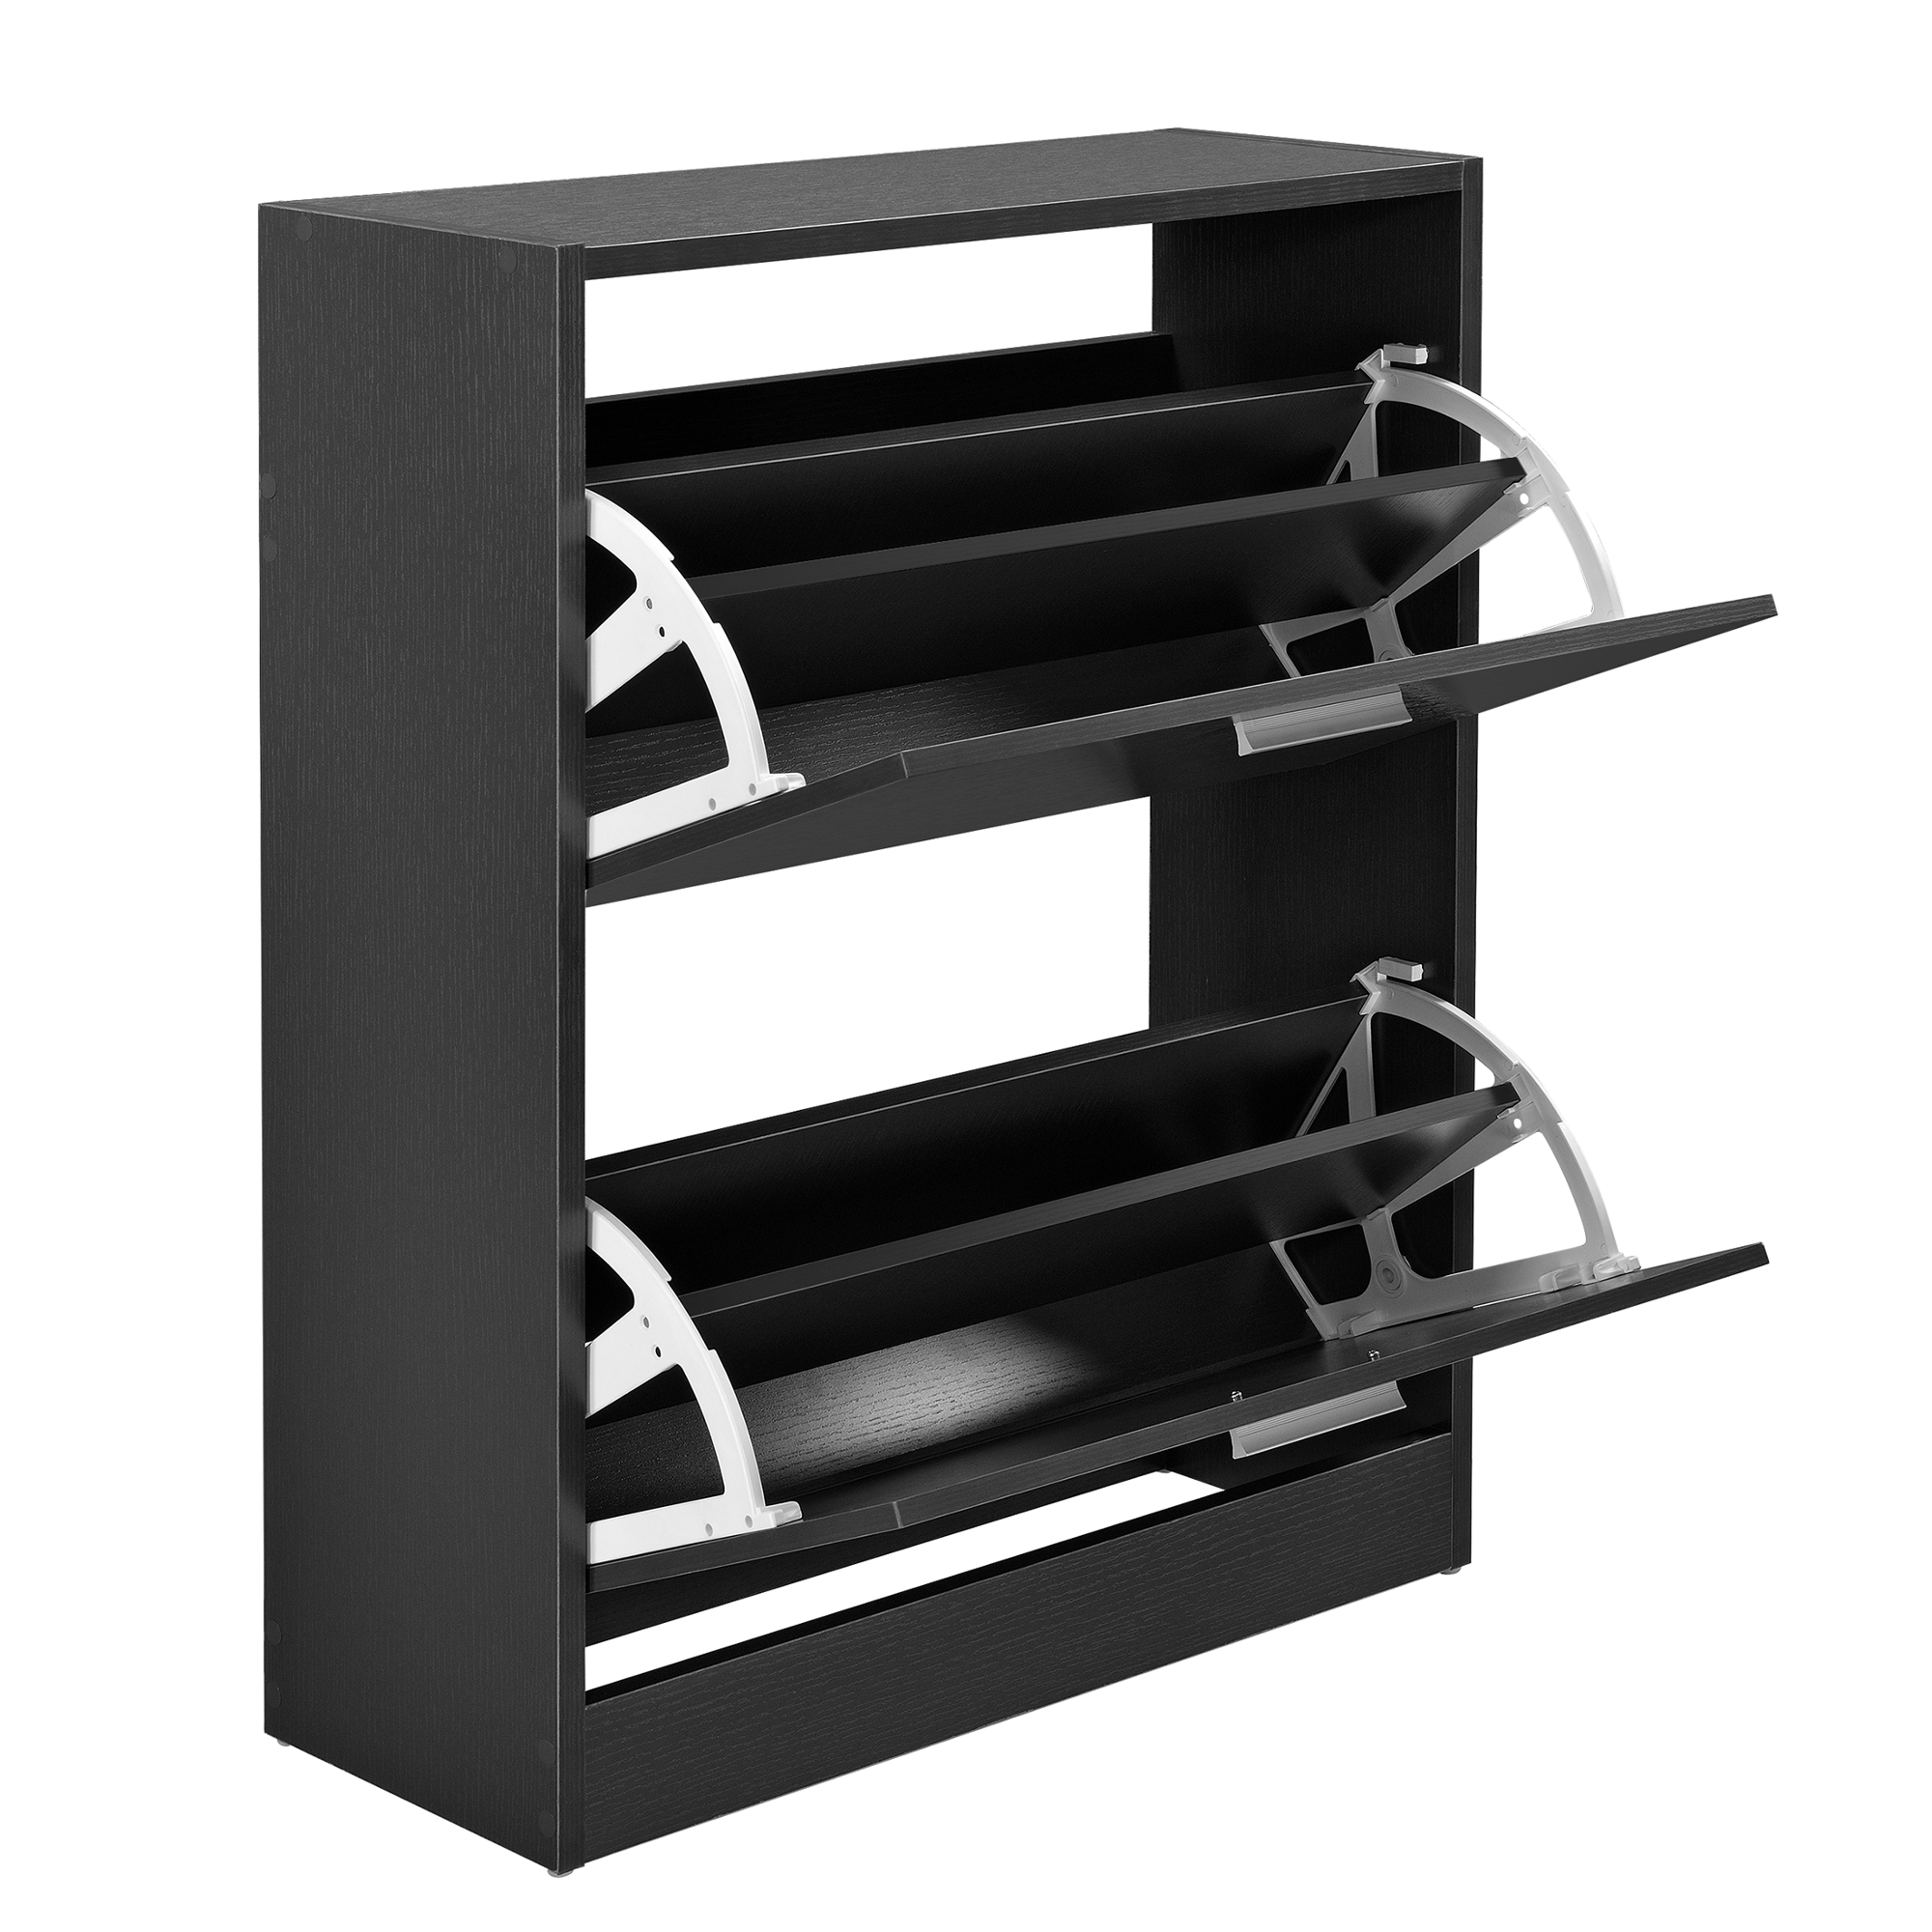 schuhschrank schuhkipper schuhregal schrank schuhaufbewahrung kommode ebay. Black Bedroom Furniture Sets. Home Design Ideas